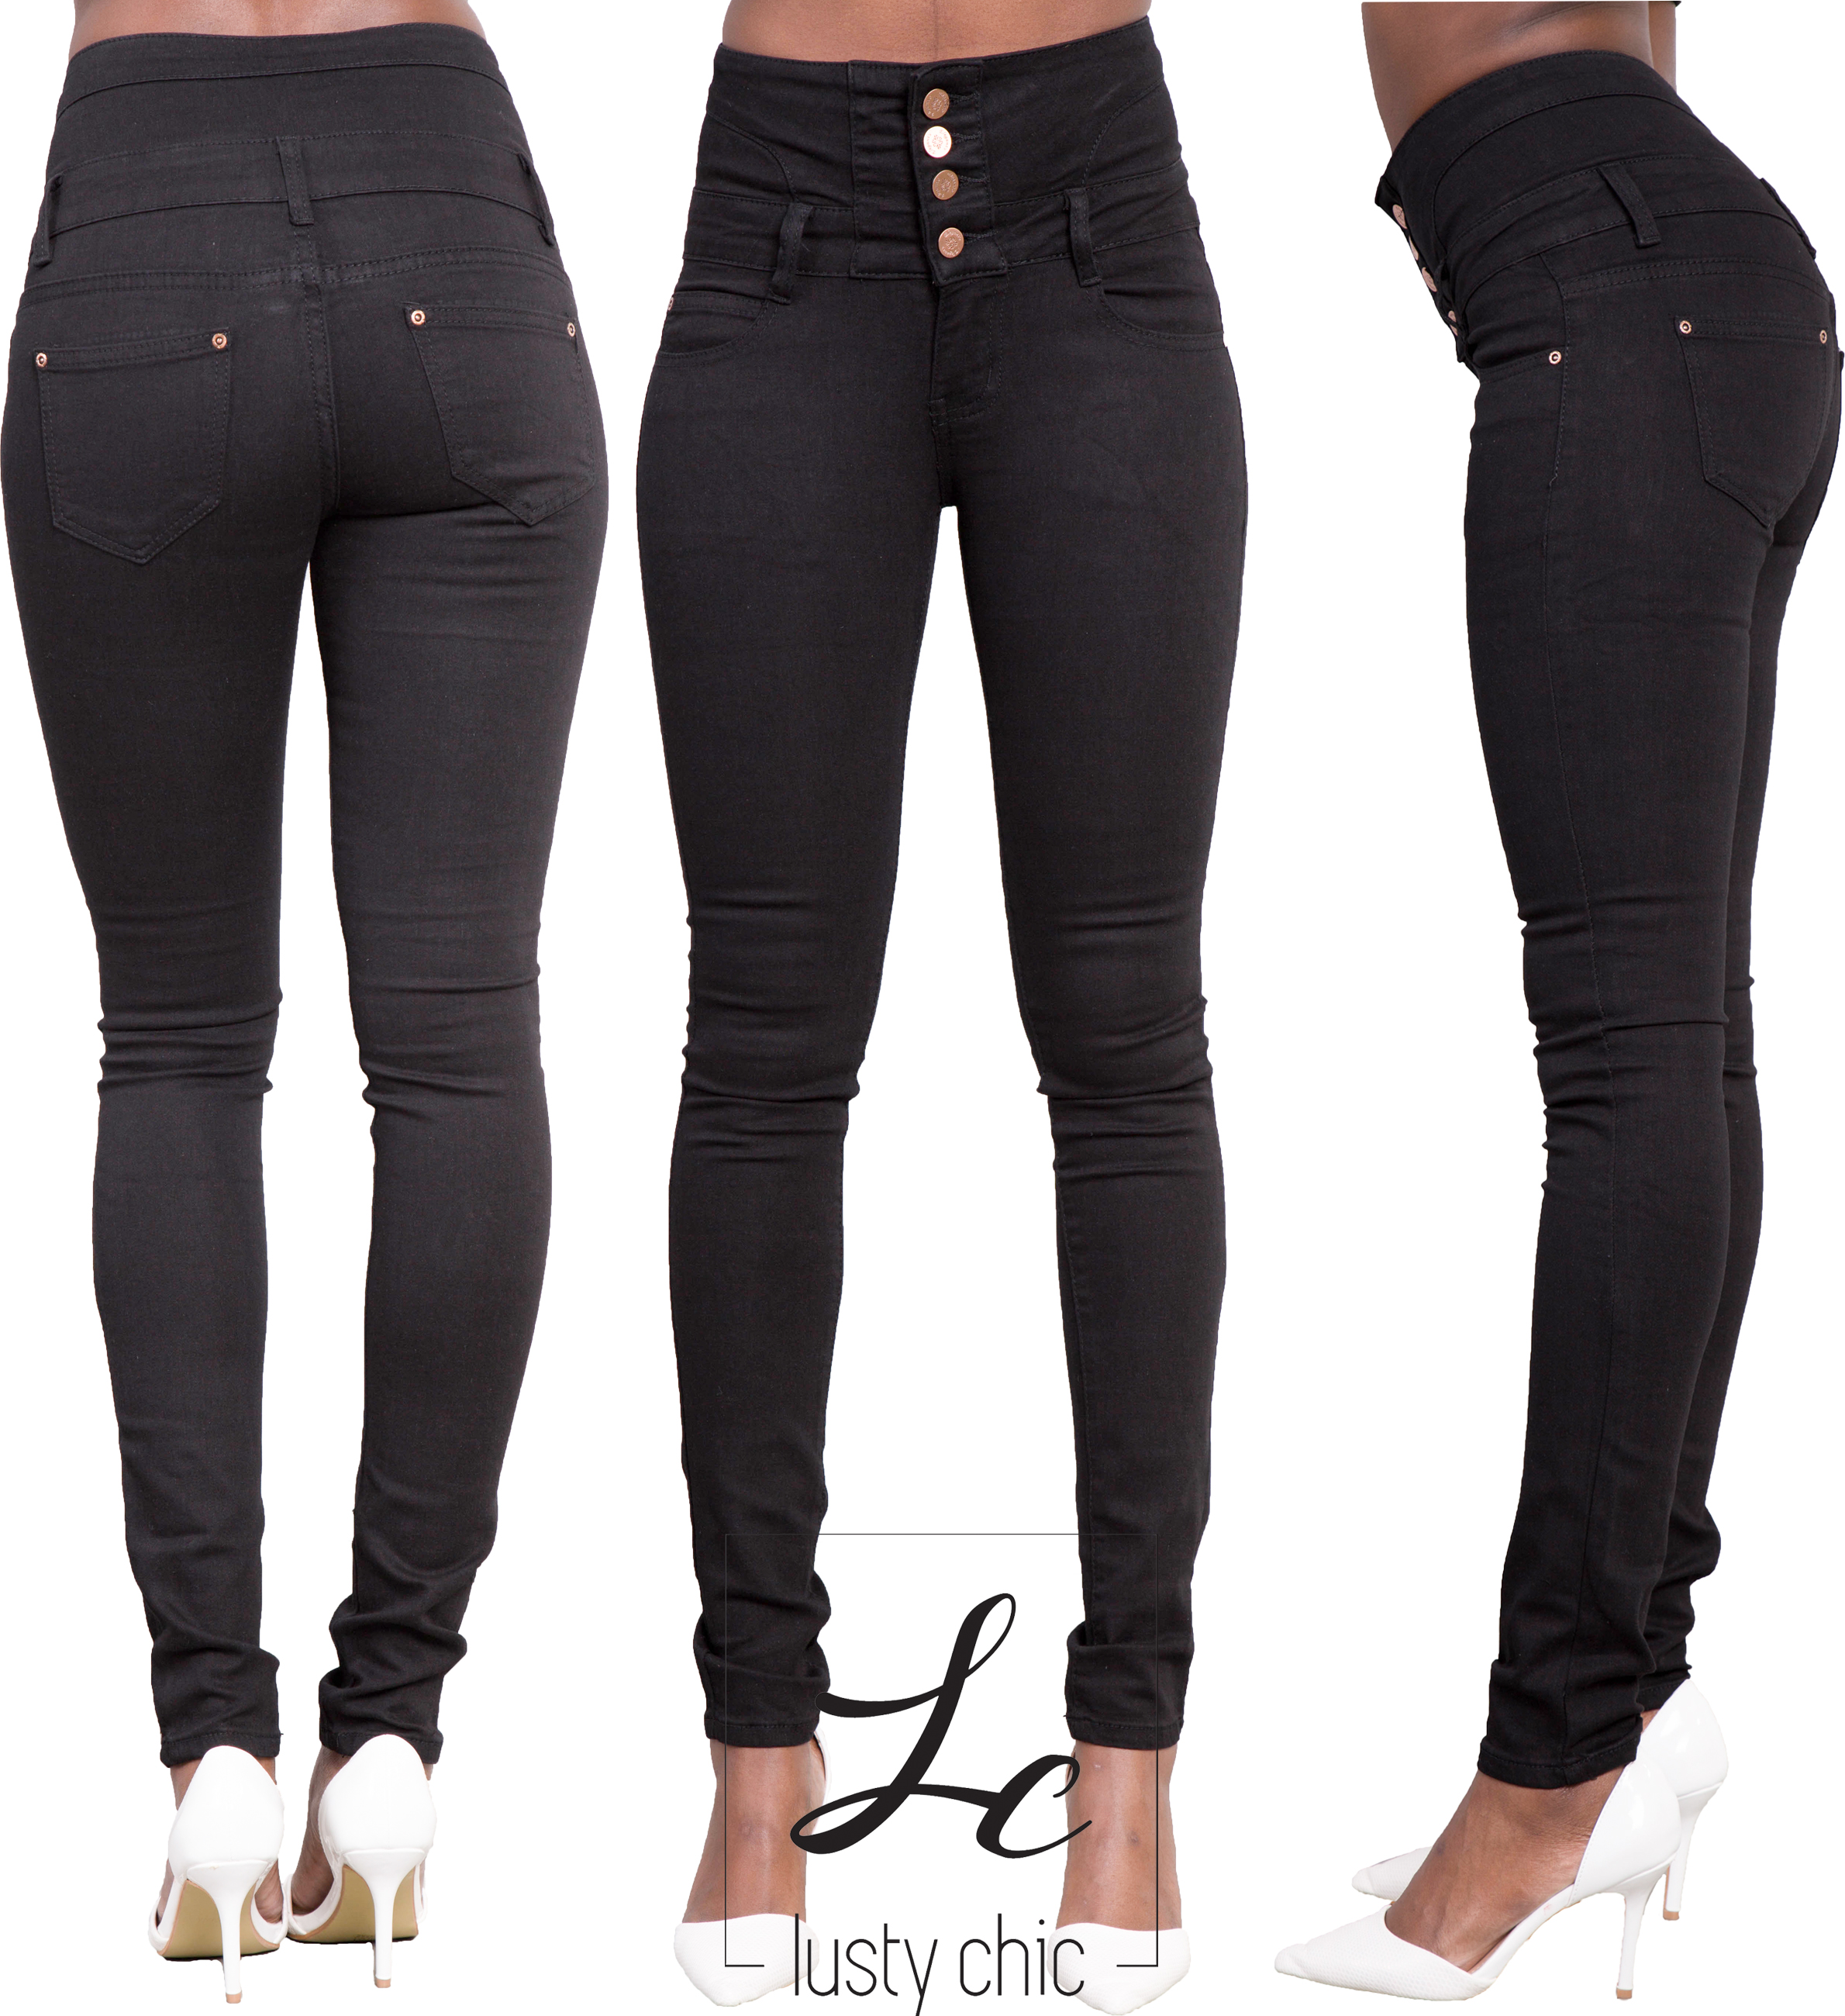 femme noir sexy jeans moulant femmes taille haute pantalon taille 34 36 38 40 14 ebay. Black Bedroom Furniture Sets. Home Design Ideas